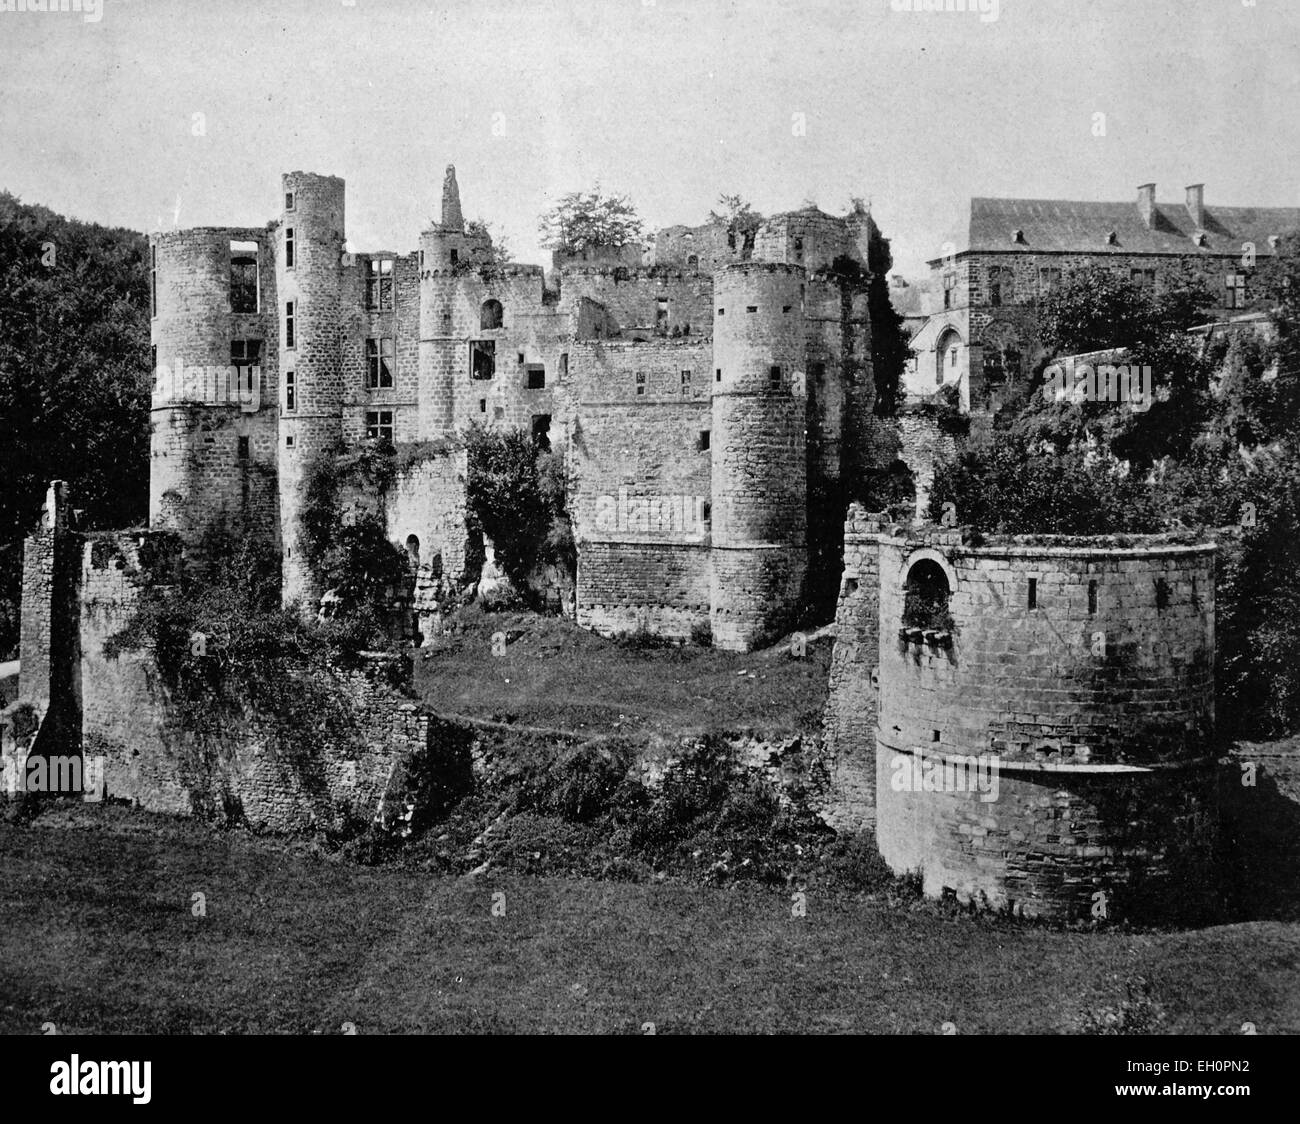 Early autotype of Beaufort Castle in Beaufort, Luxembourg, historical photo, 1884 - Stock Image